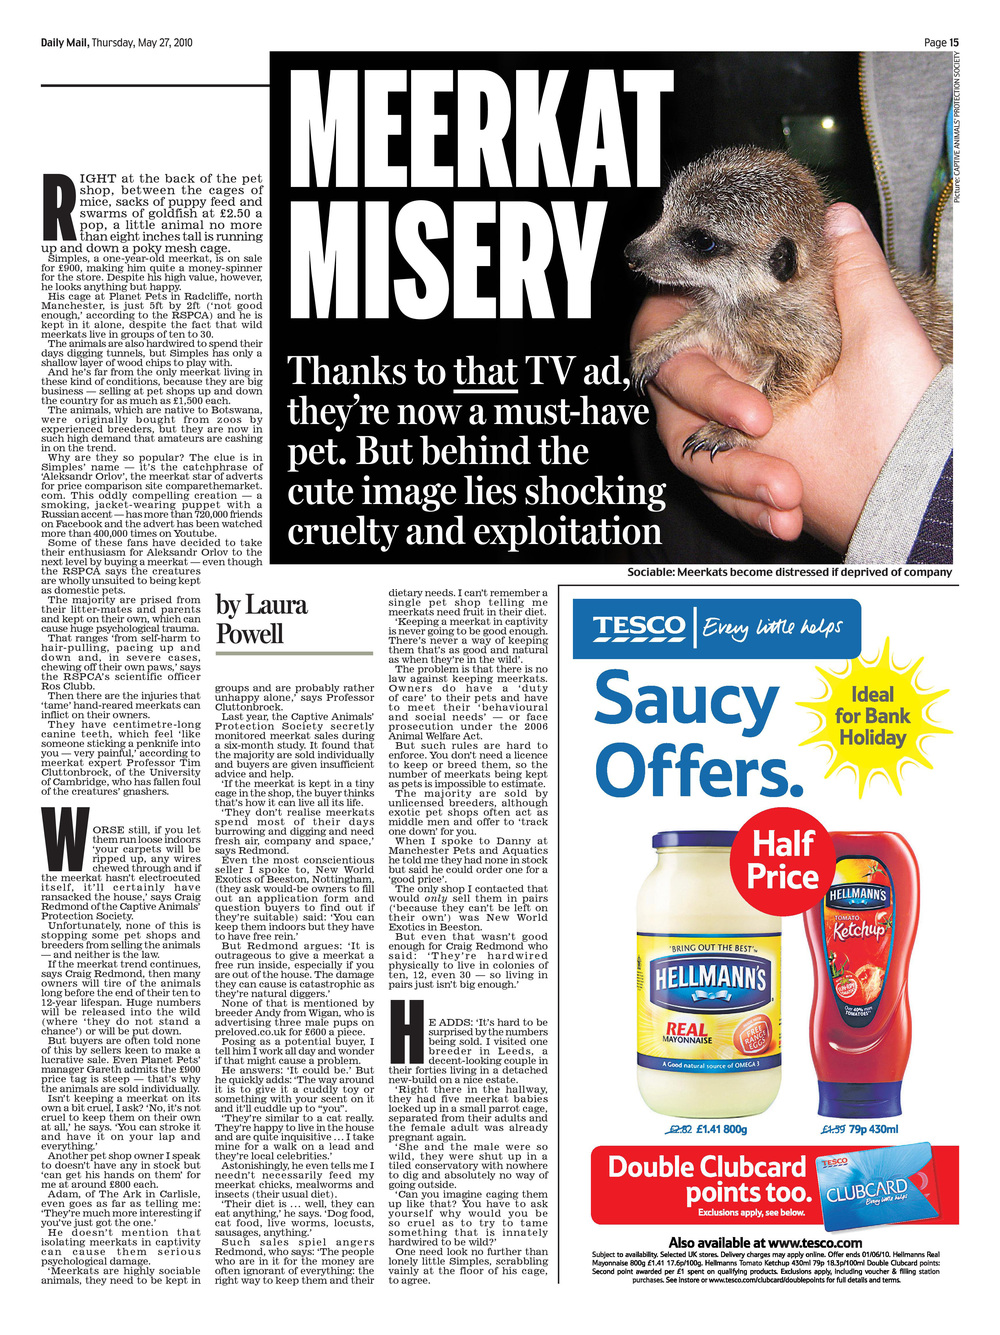 Meerkat misery  Exploitation of meerkats   Daily Mail